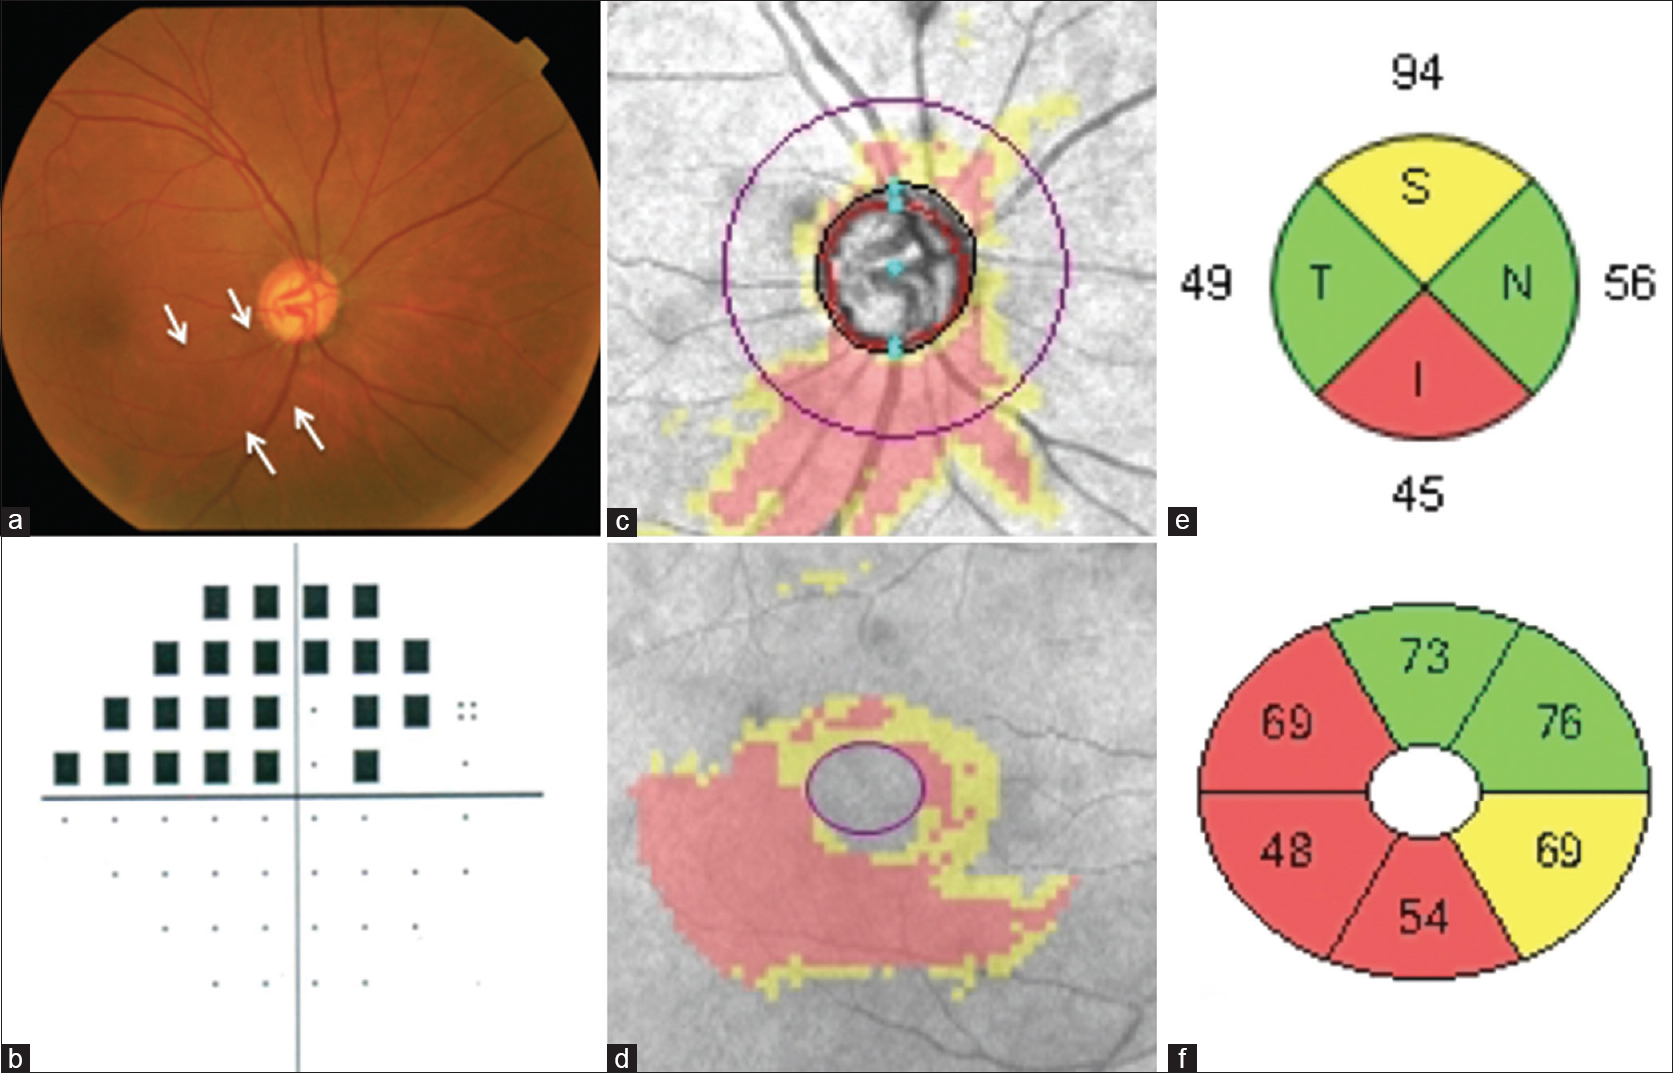 Figure 1: A 78-year-old male in the perimetric glaucoma group. (a) Fundus photography showing diffuse RNFL defect. (b) Superior visual field on automated perimetry. (c, d) Peripapillary RNFL and GC-IPL deviation maps showing thinning in superior and inferior region. (e, f) Defects on RNFL quadrant and GC-IPL sector analysis